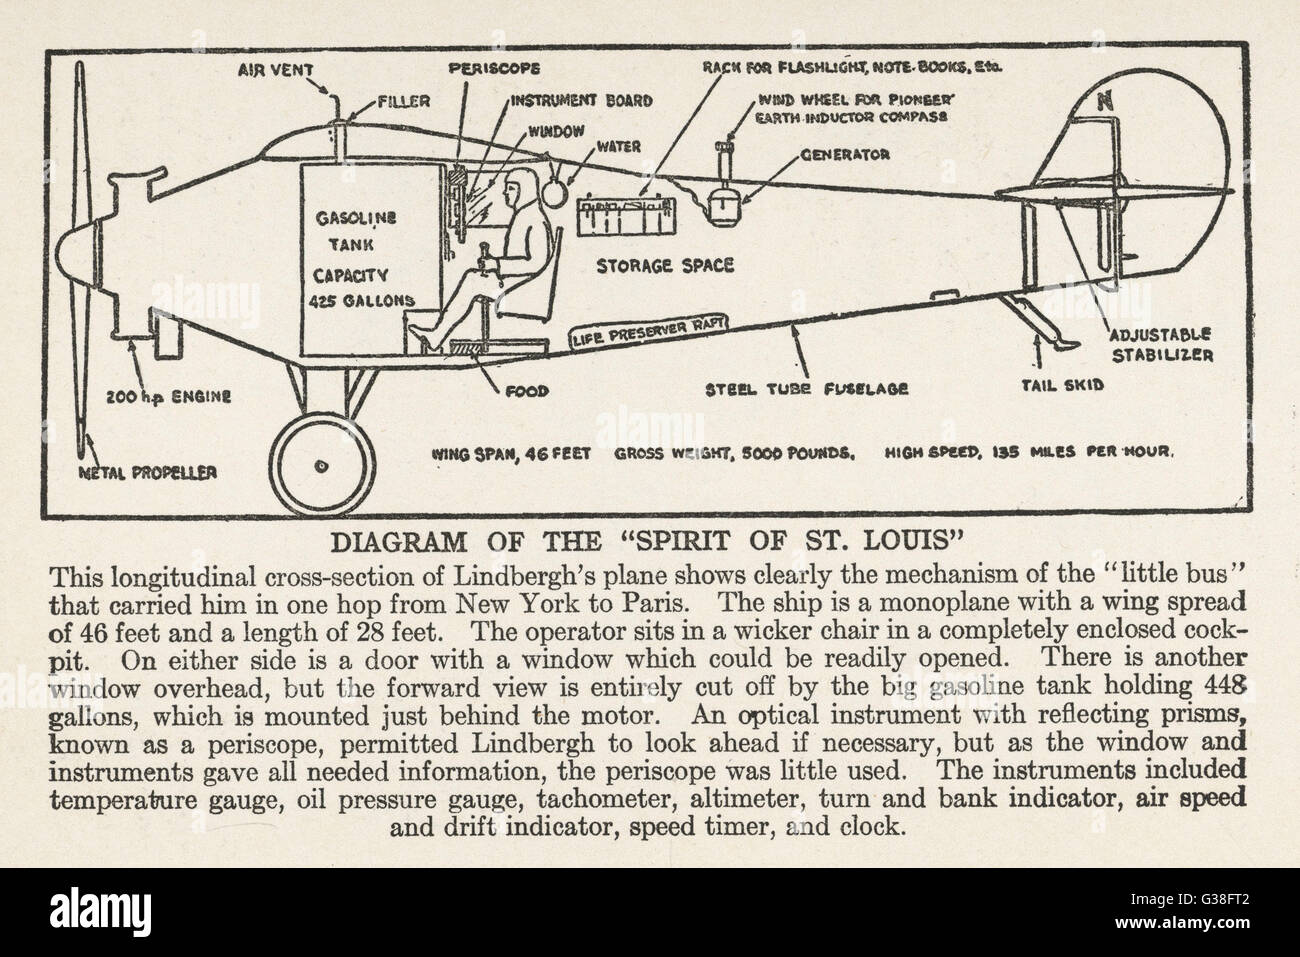 A longitudinal cross-section  diagram of the 'Spirit of St.  Louis'.       Date: 1927 - Stock Image